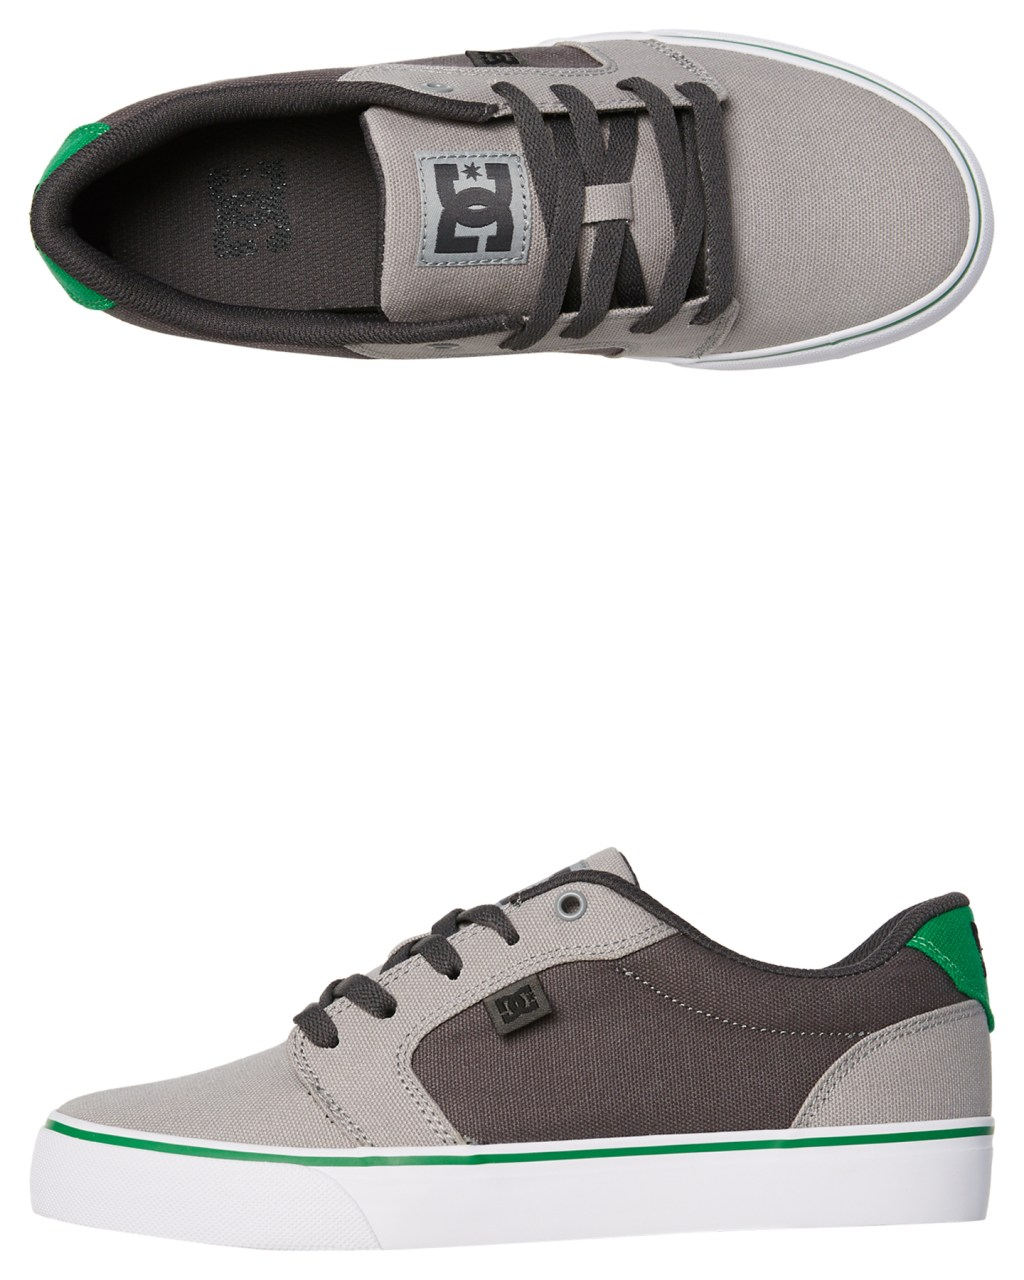 d1f89466b20c Dc Shoes Anvil Tx Grey Grey Green Womens Sneakers Size 8